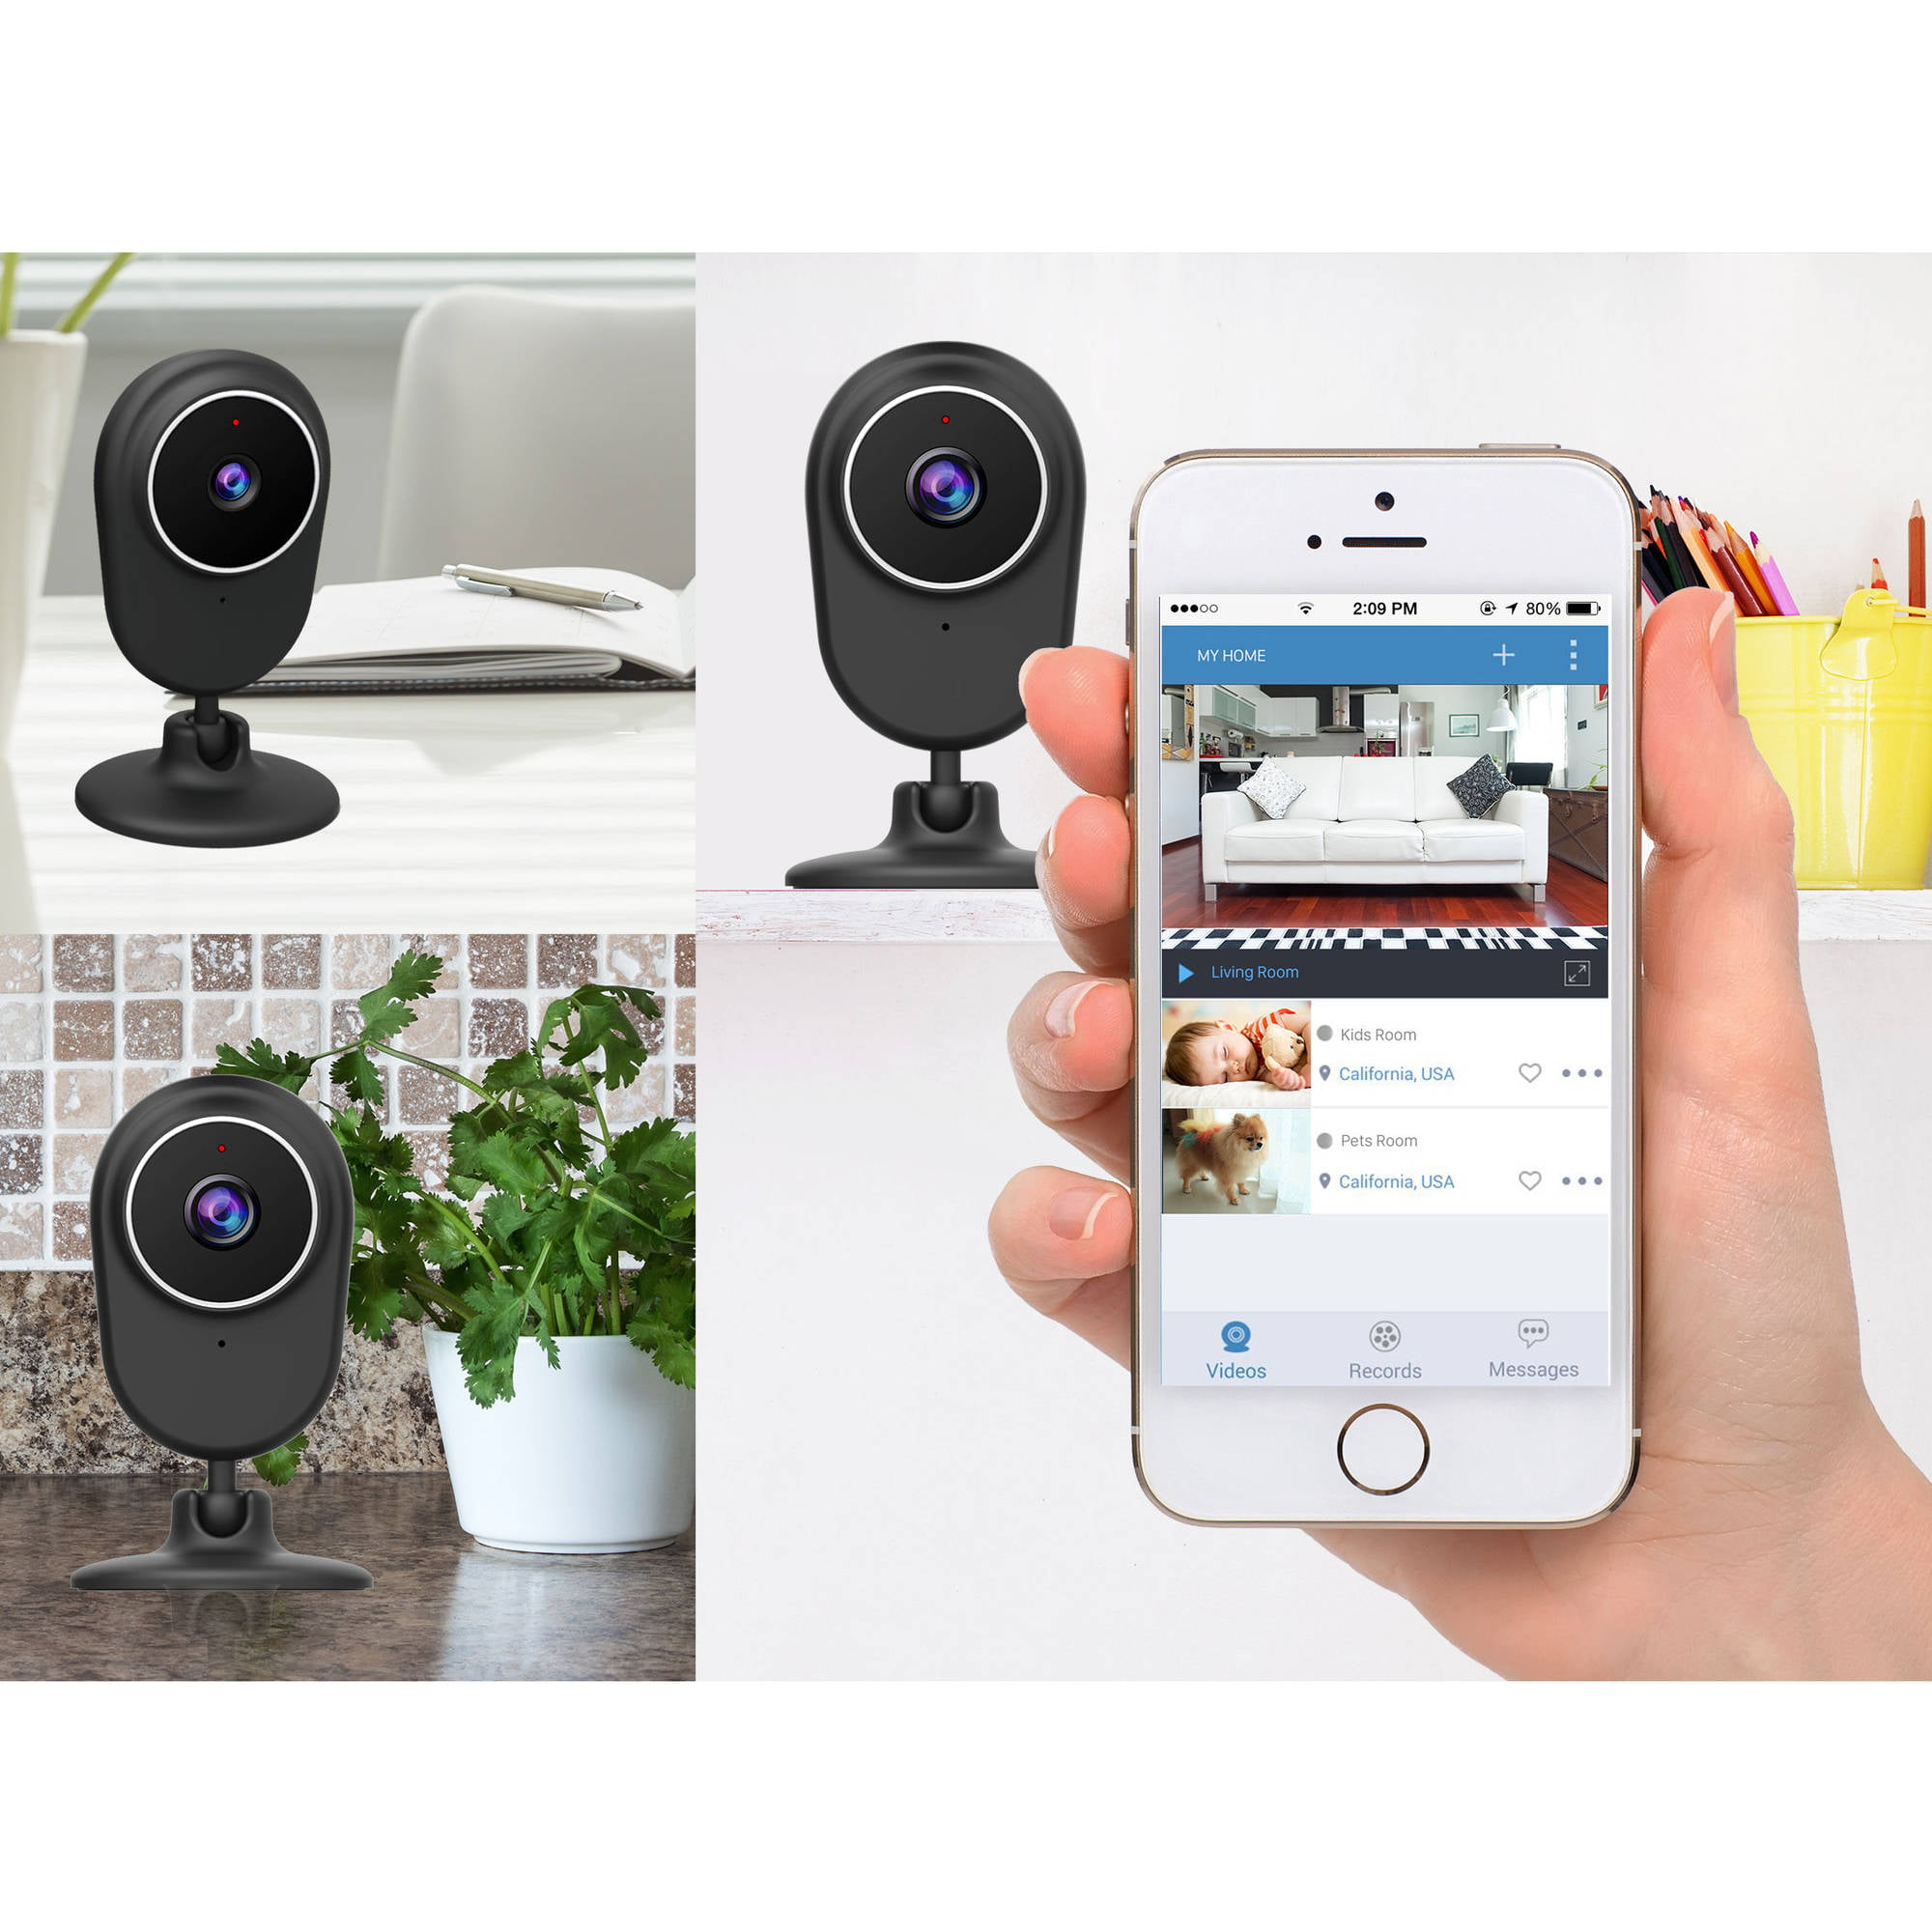 Momentum 720p WiFi Video Audio Monitoring Camera   Walmart.com